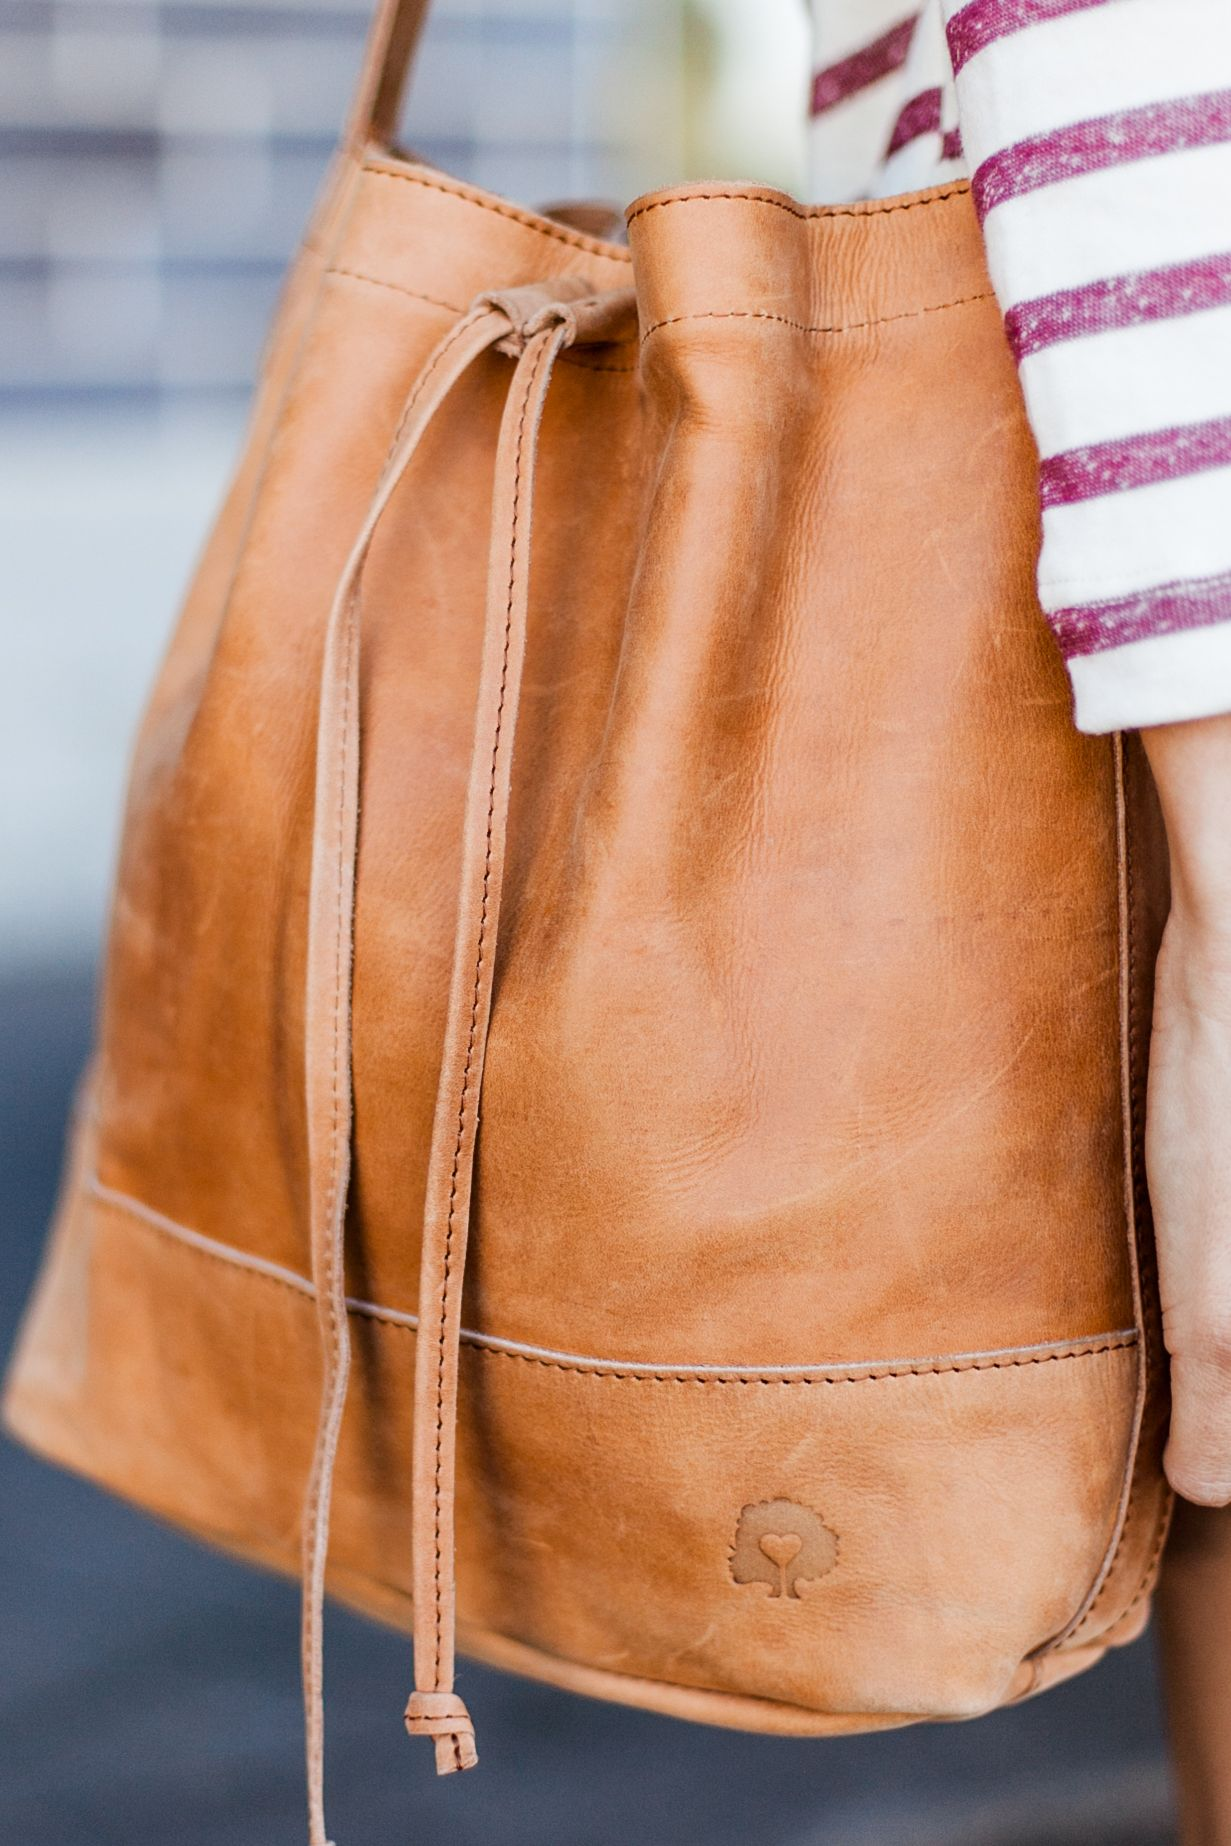 To acquire The your bag for perfect lifestyle pictures trends